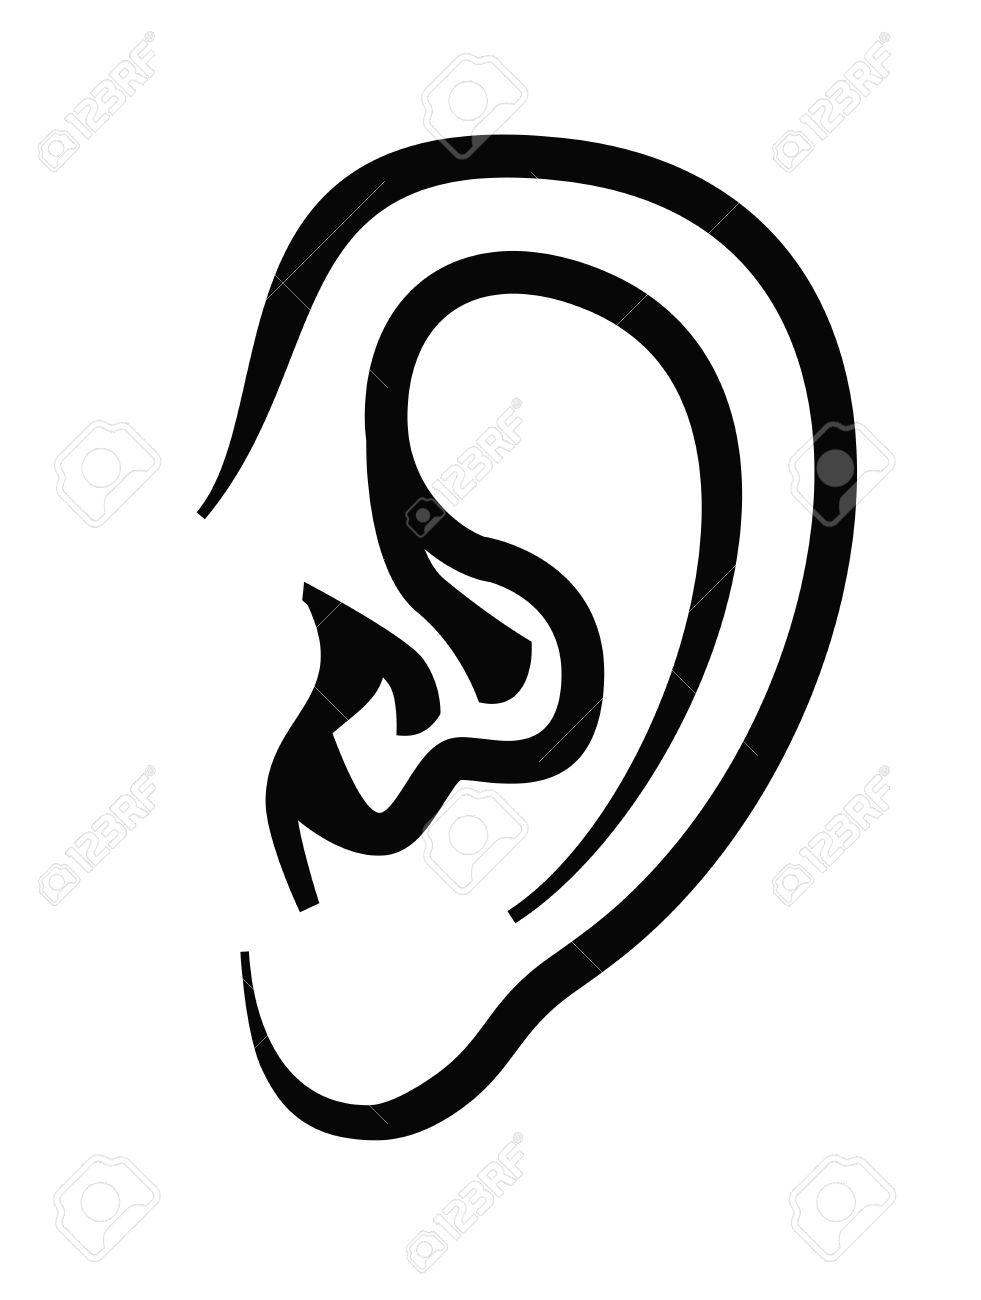 vector black ear icon on white background.